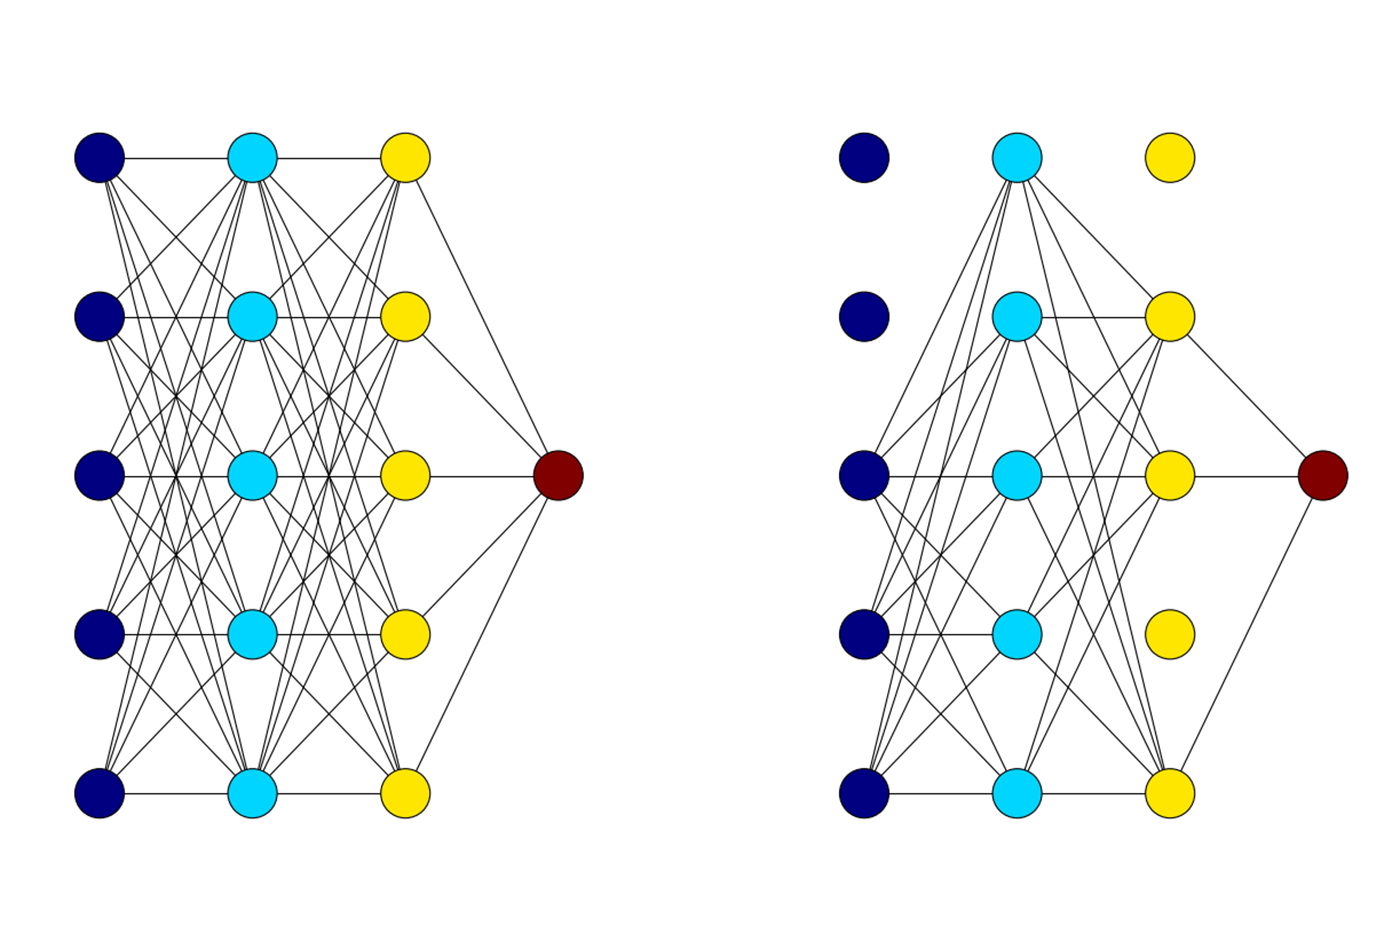 On the left: A normal fully connected network. On the right: The same network during training, with p = 0.5.